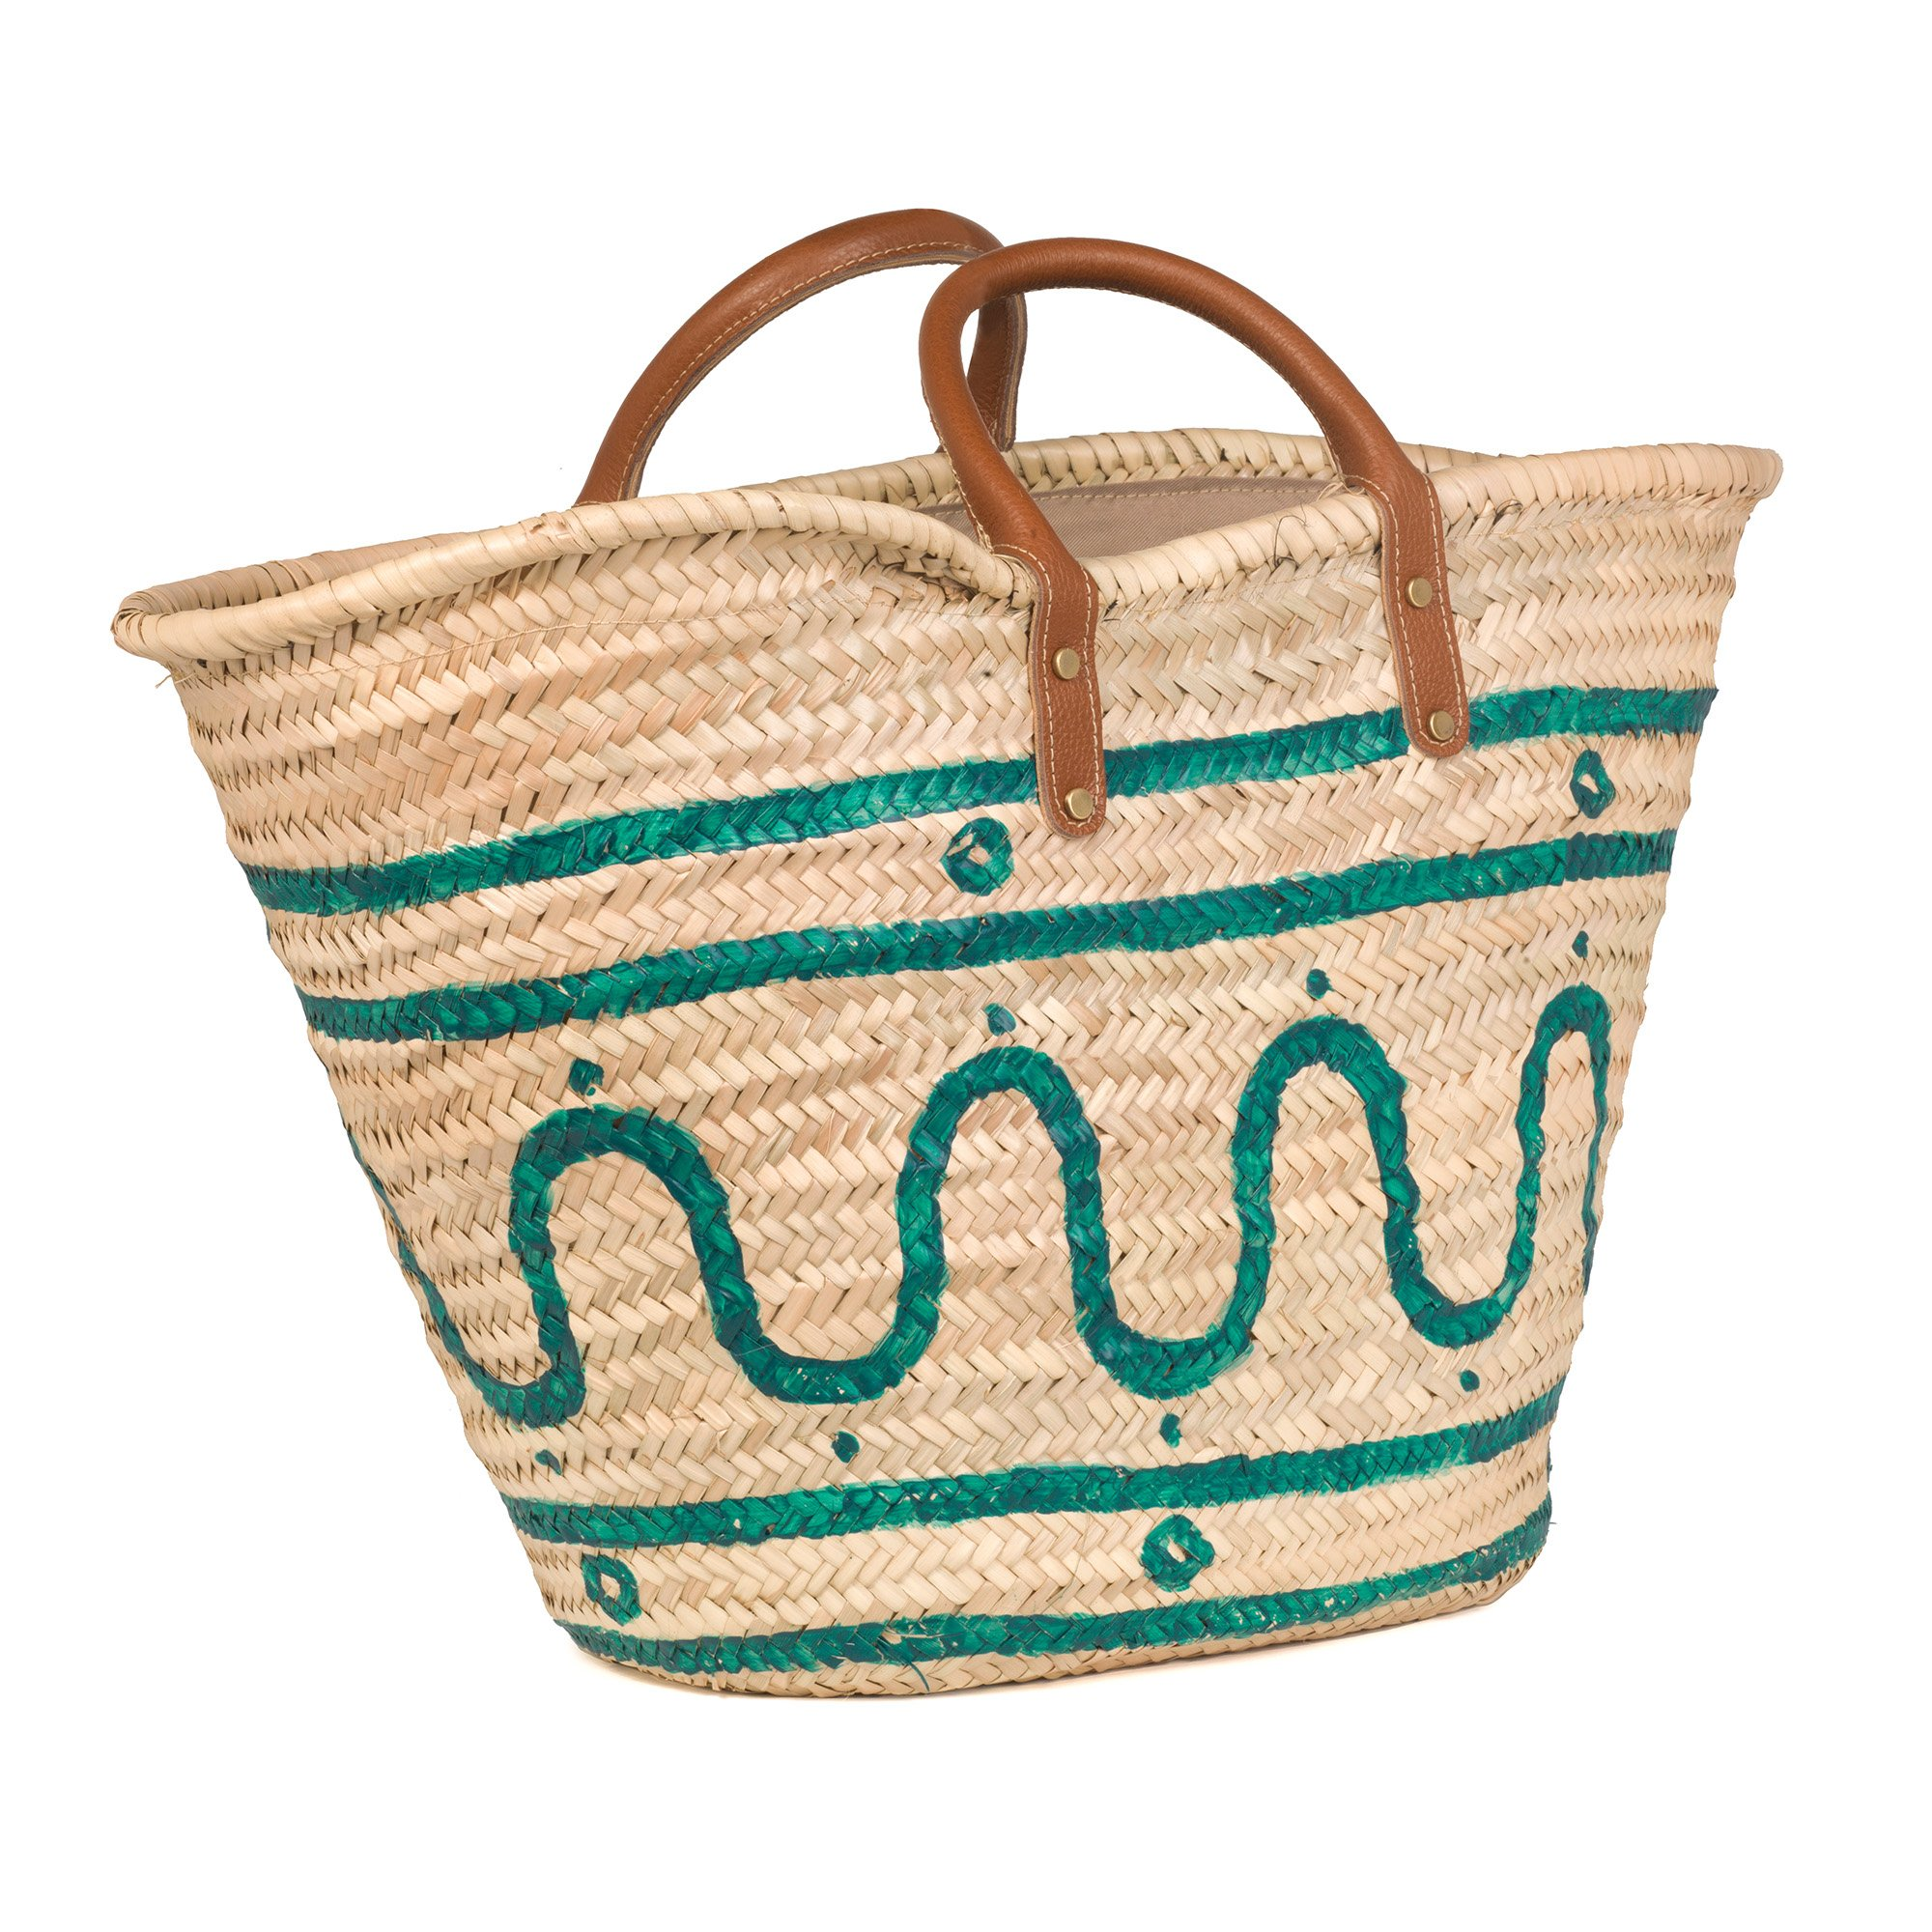 Kyma Green Basket with Leather Handles